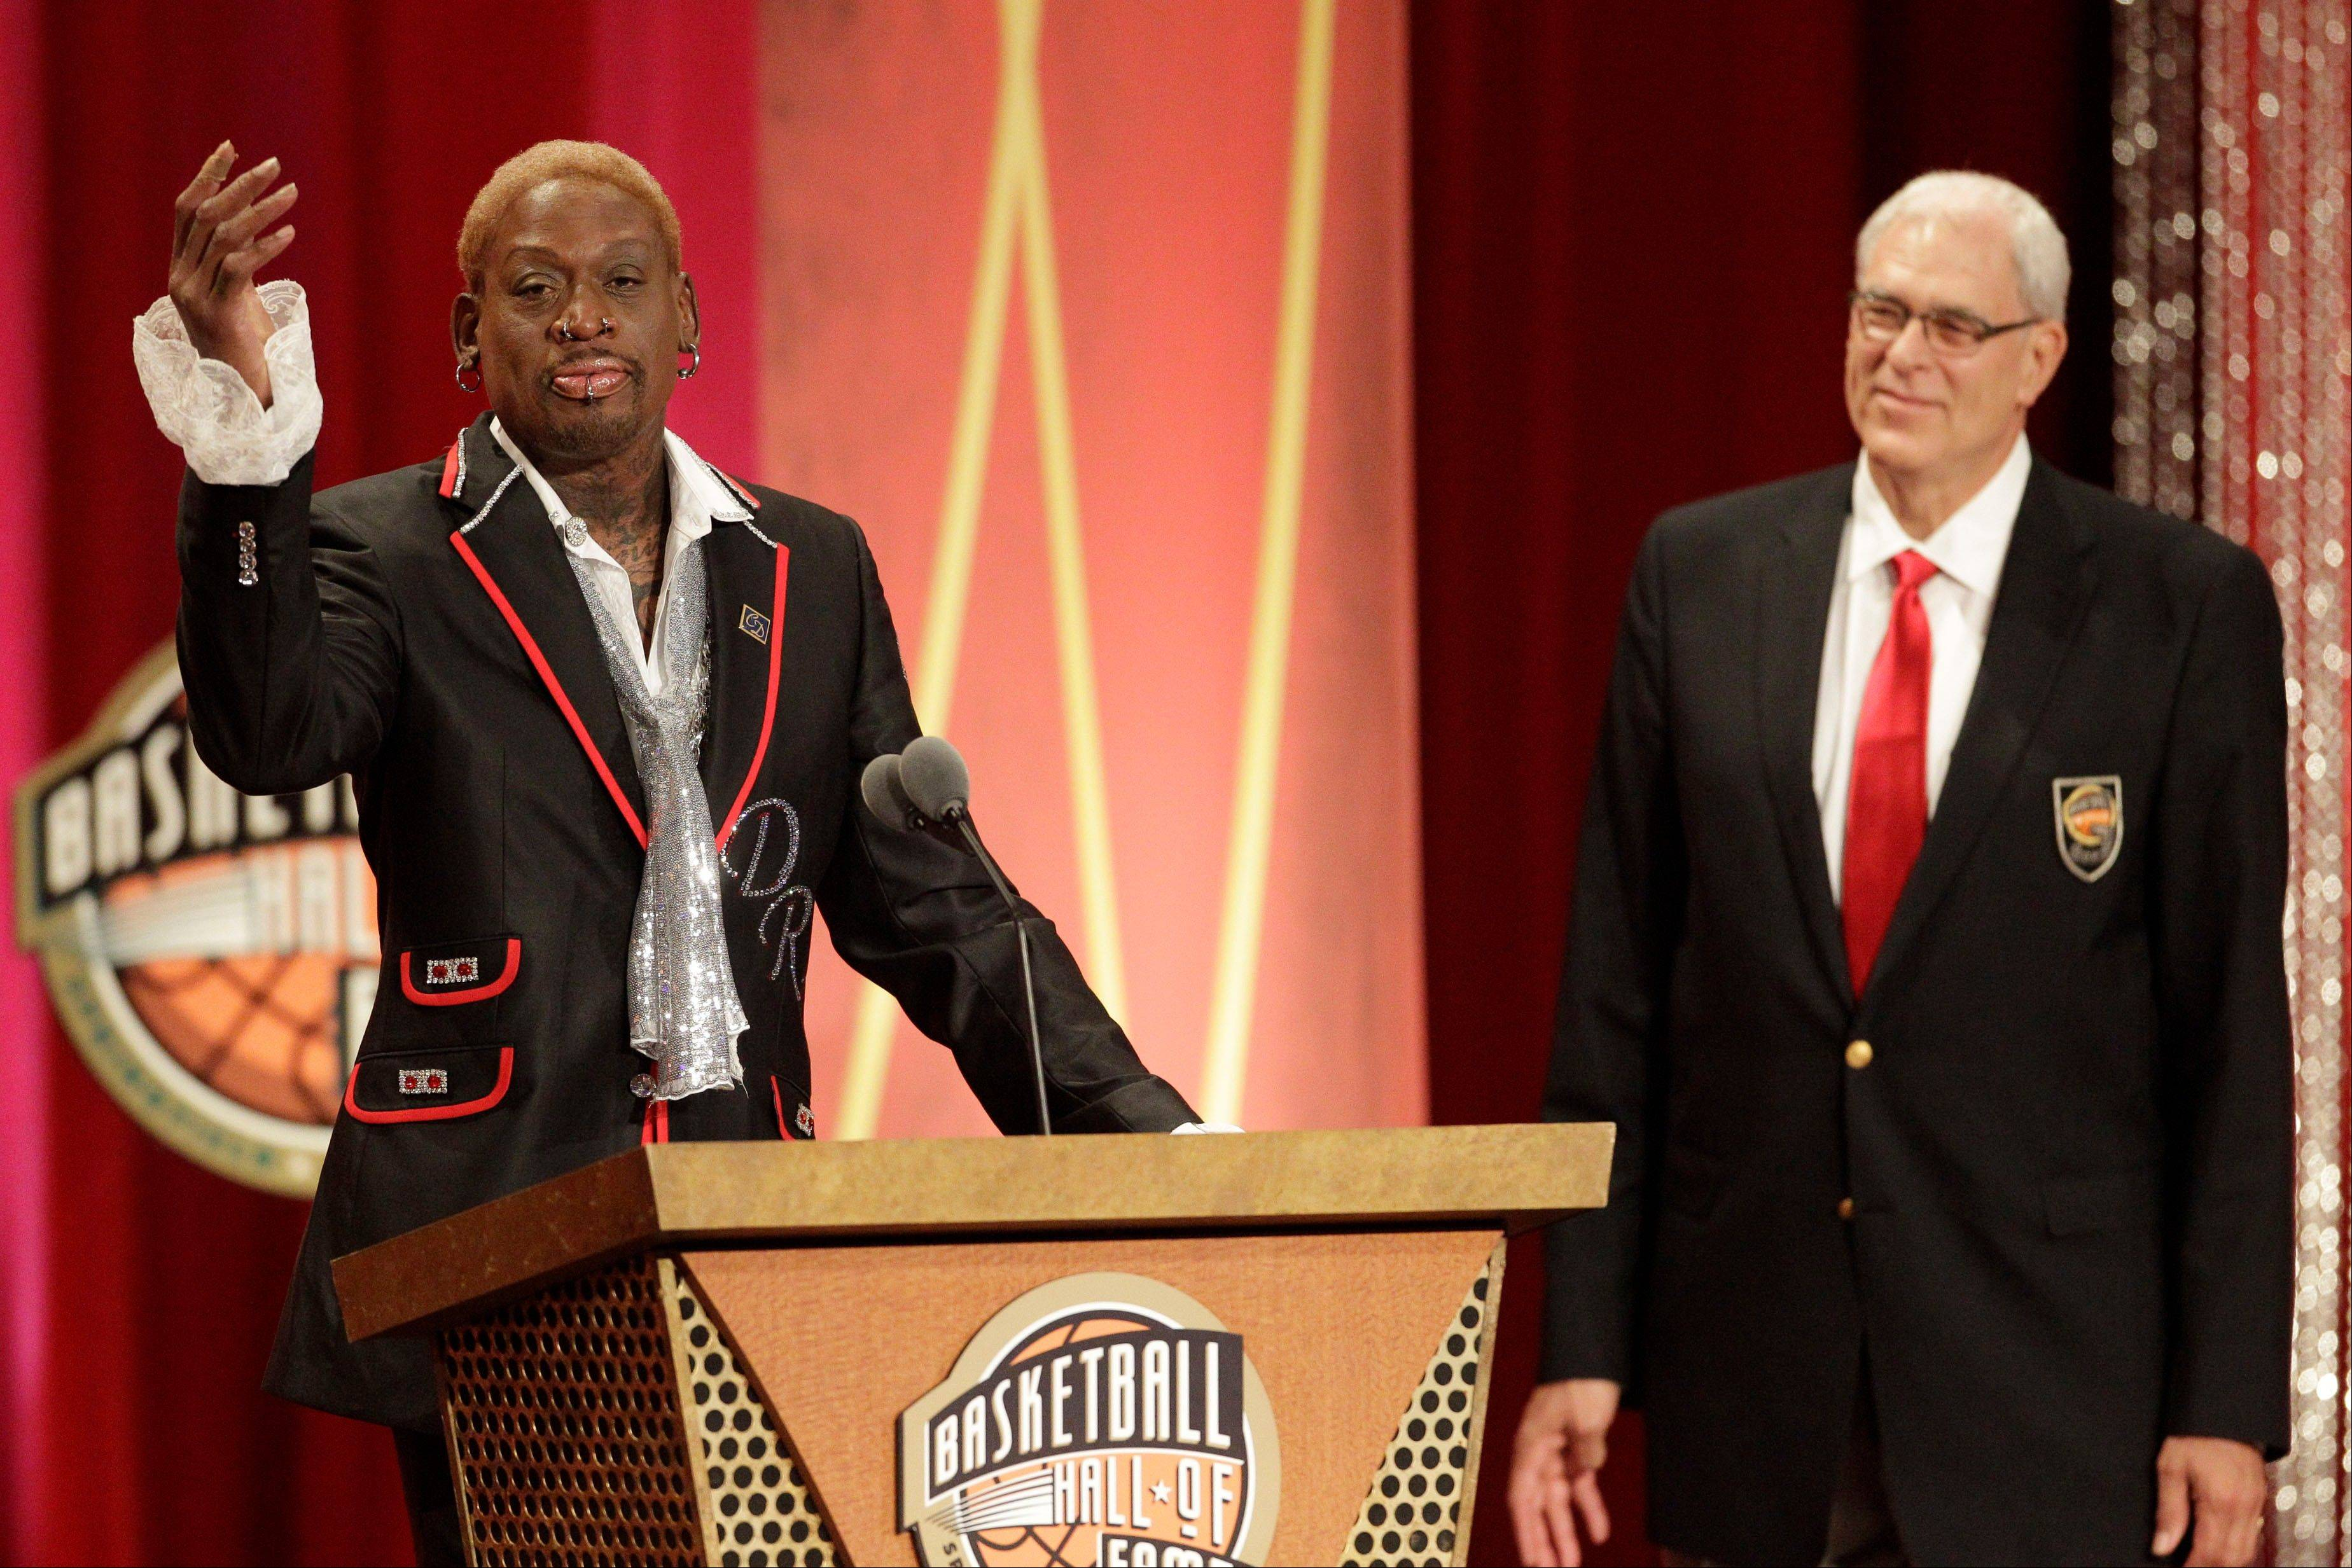 Dennis Rodman delivers his address at his Basketball Hall of Fame enshrinement during a ceremony as his former Bulls coach Phil Jackson looks on.